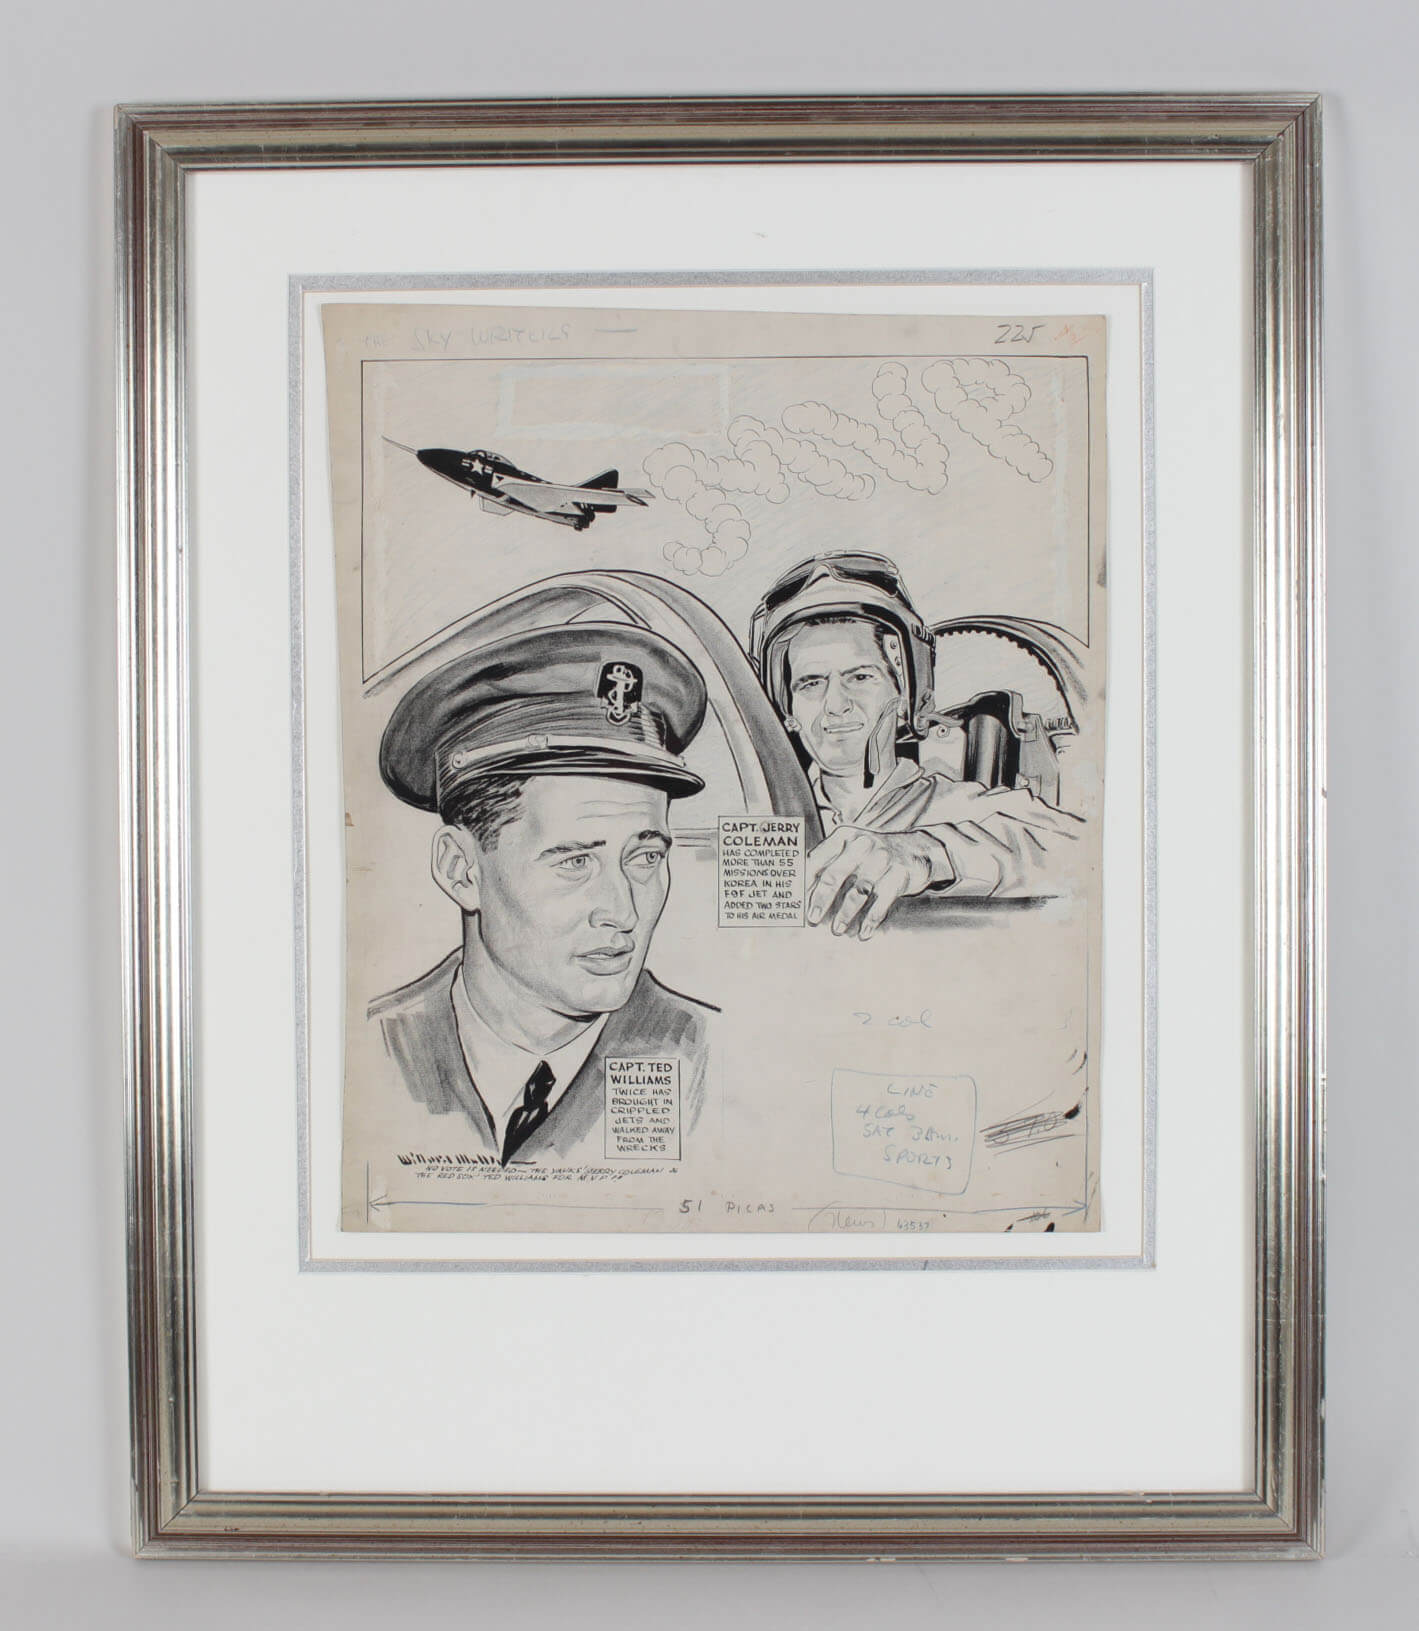 """Vintage Red Sox & Yankees Military Service Airmen - Ted Williams & Jerry Coleman """"The Skywriters"""" Original Artwork by Willard Mullin 25x31 Display"""